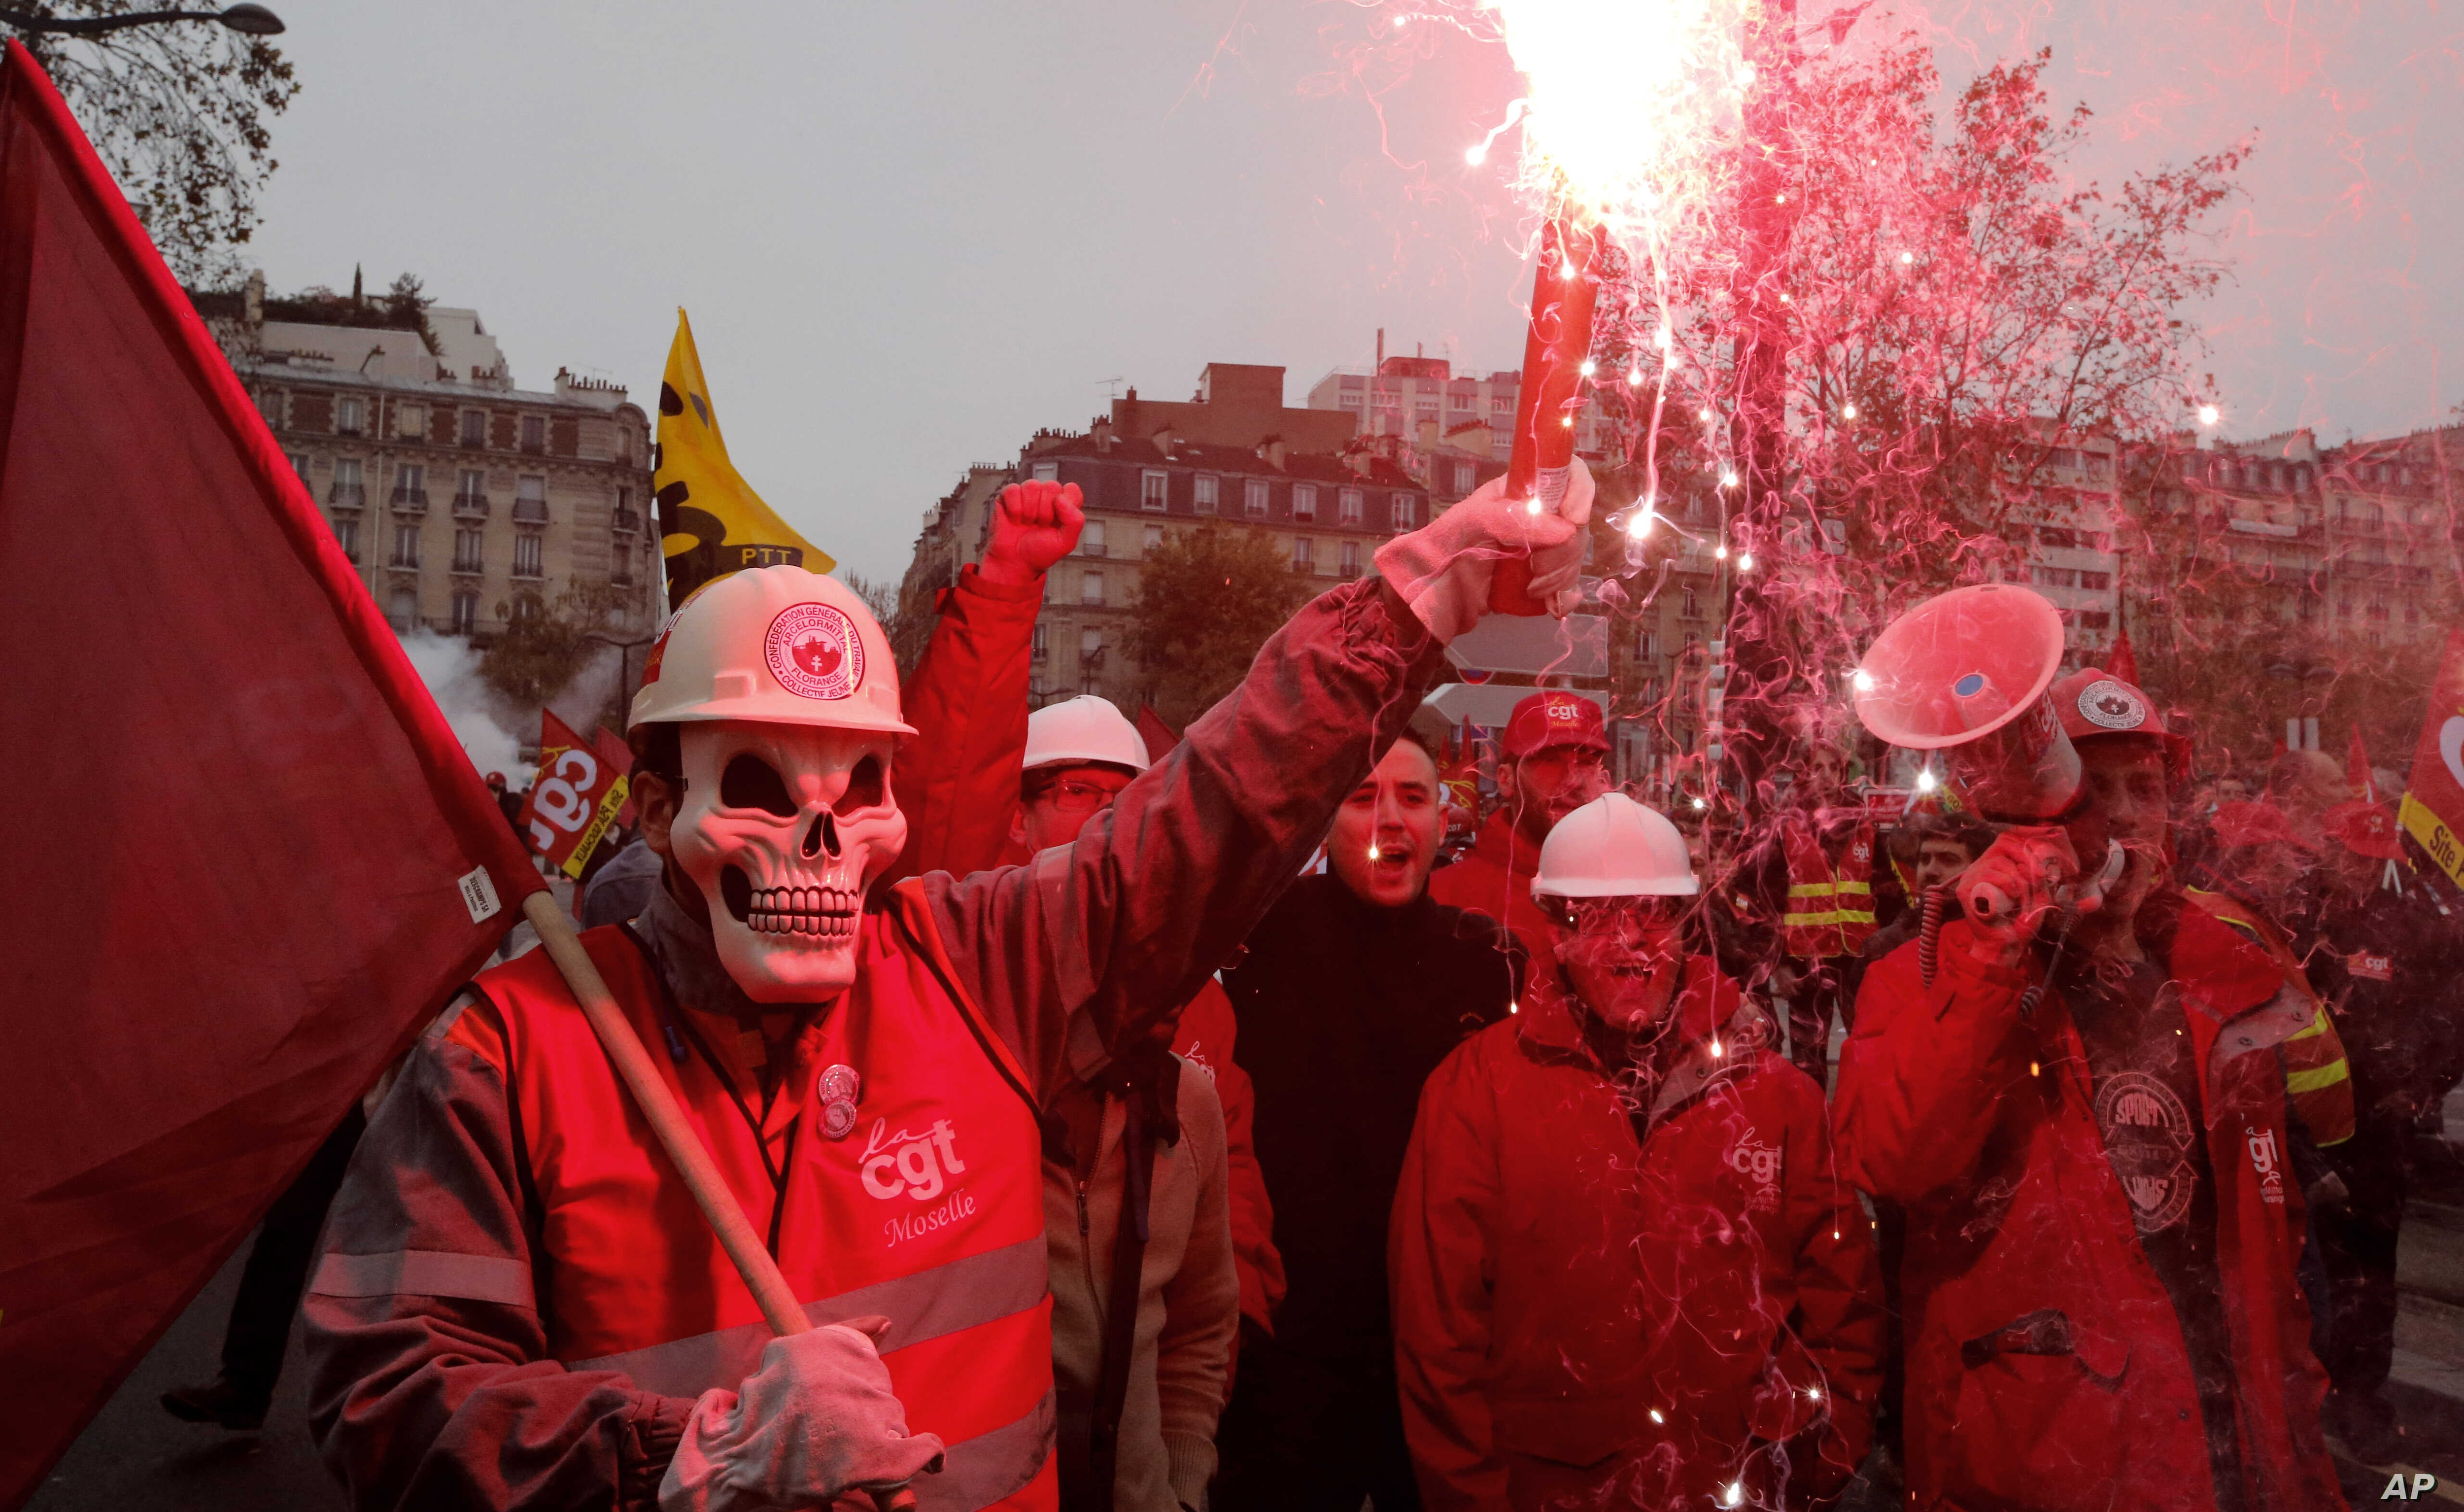 Union members hold safety flares during a demonstration in front of the entrance of the Paris auto show in Paris, Tuesday, Oct. 9, 2012.